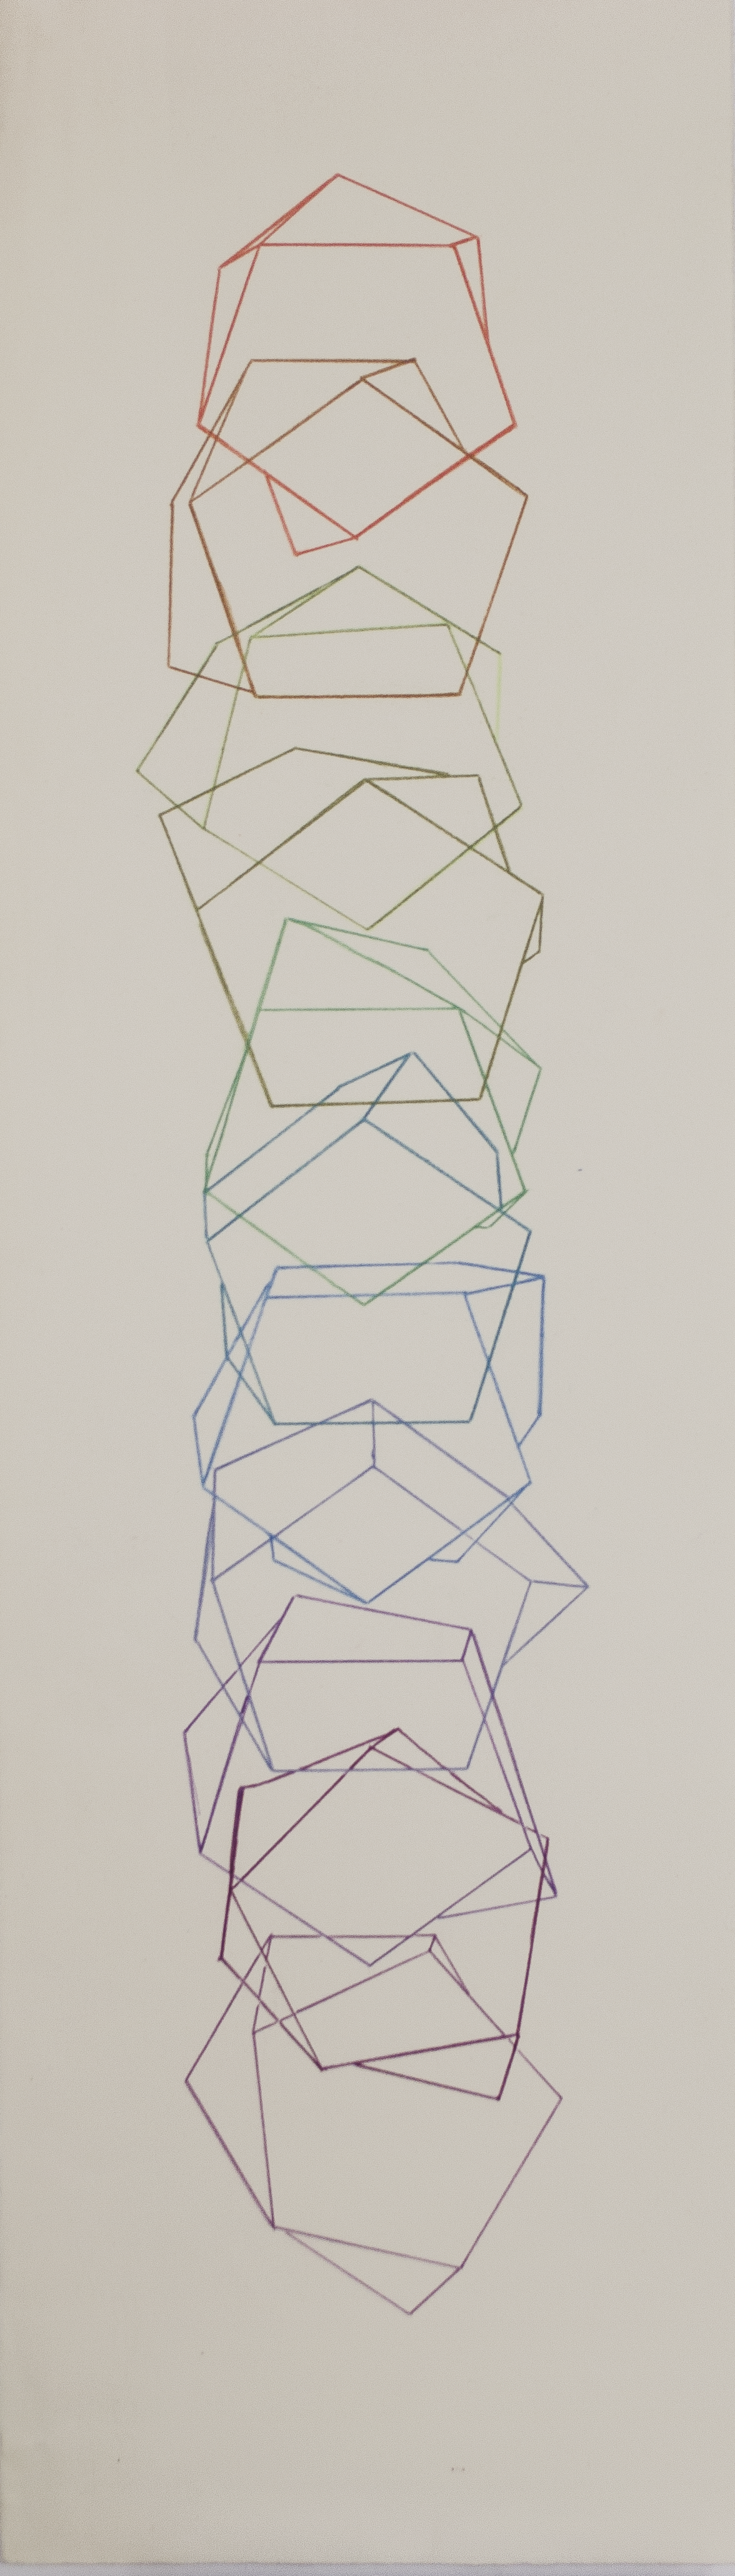 "CELEBRATING THE SCUTOID; SCUTOID #1 © 2019 9"" (w) x 30"" (h)"